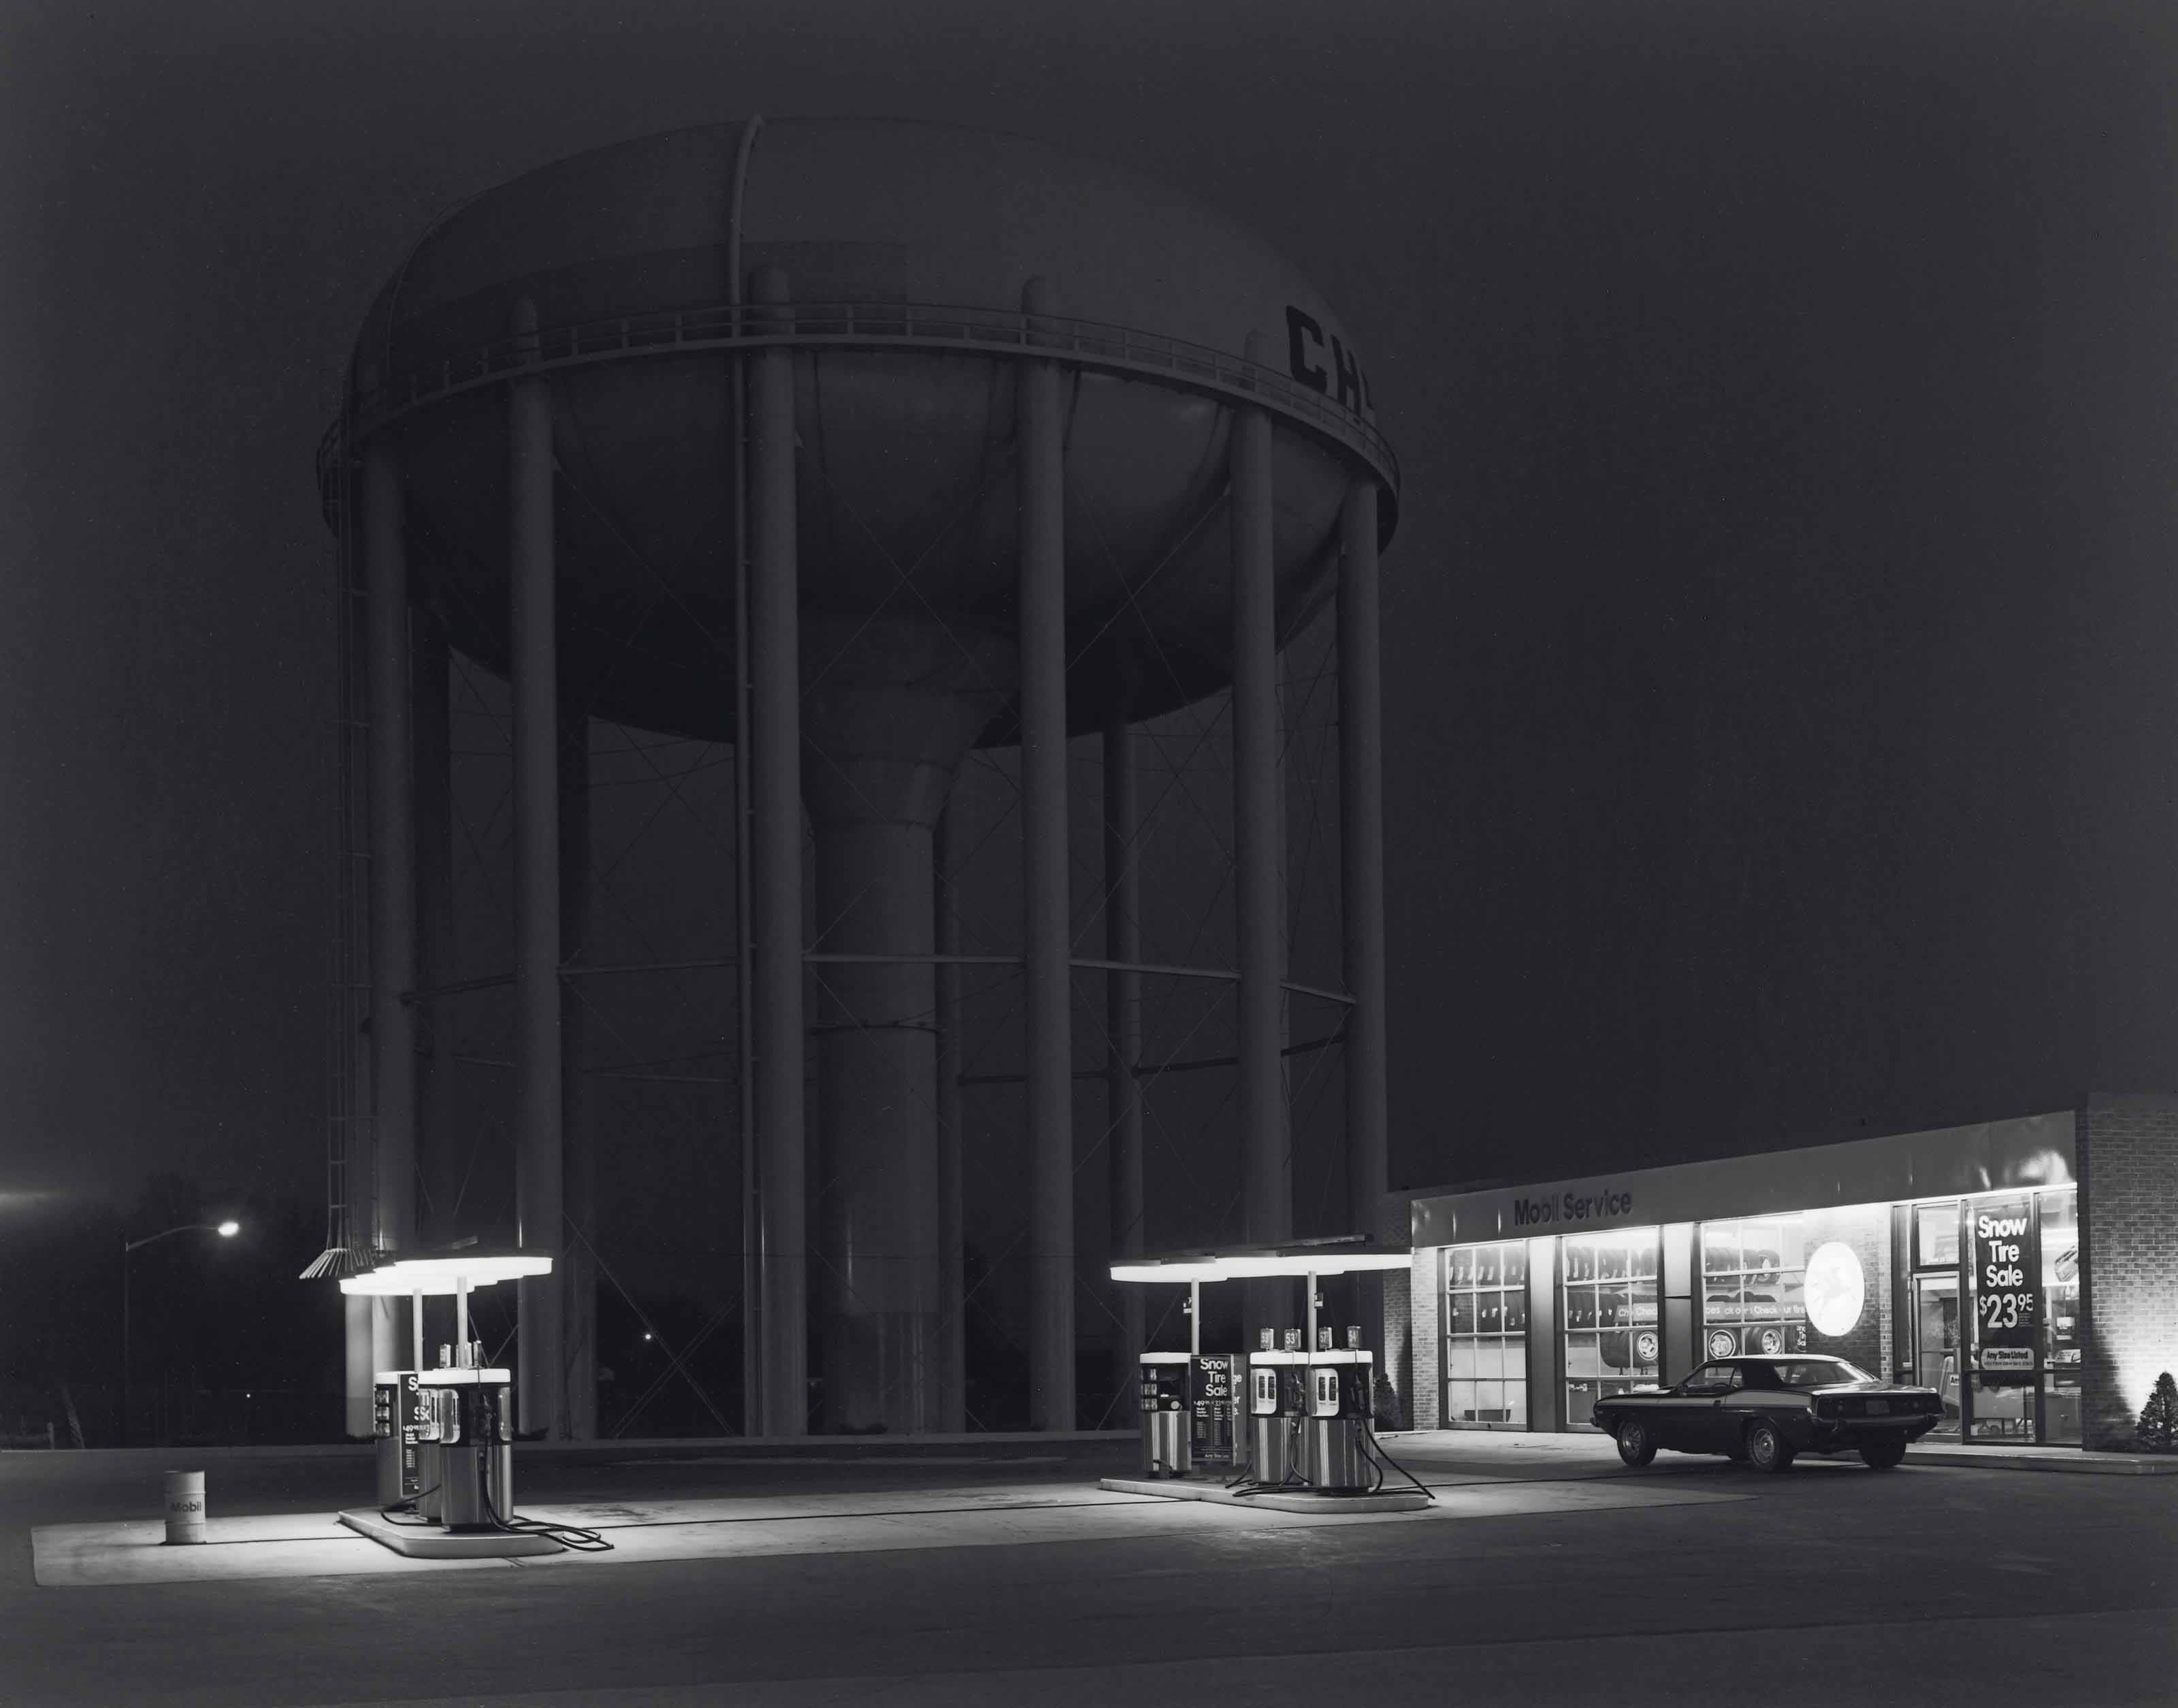 Petit's Mobil Gas Station, Cherry Hill, New Jersey, 1974